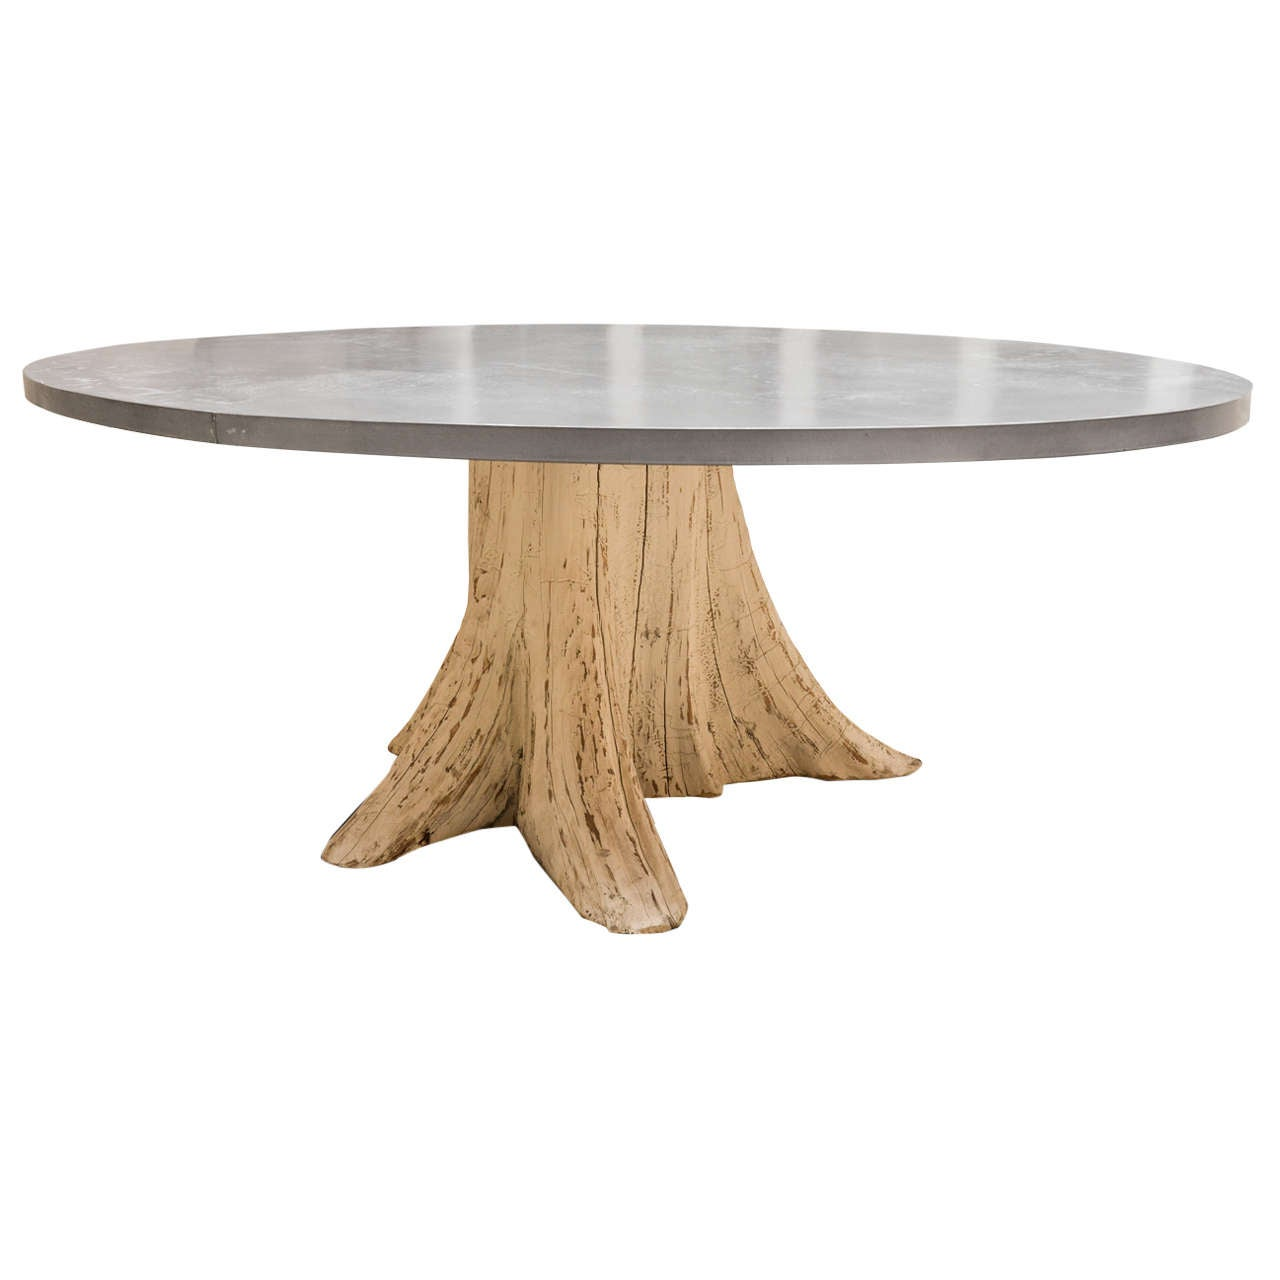 Natural Tree Trunk Dining Table with Zinc Top at 1stdibs : X from 1stdibs.com size 1280 x 1280 jpeg 52kB